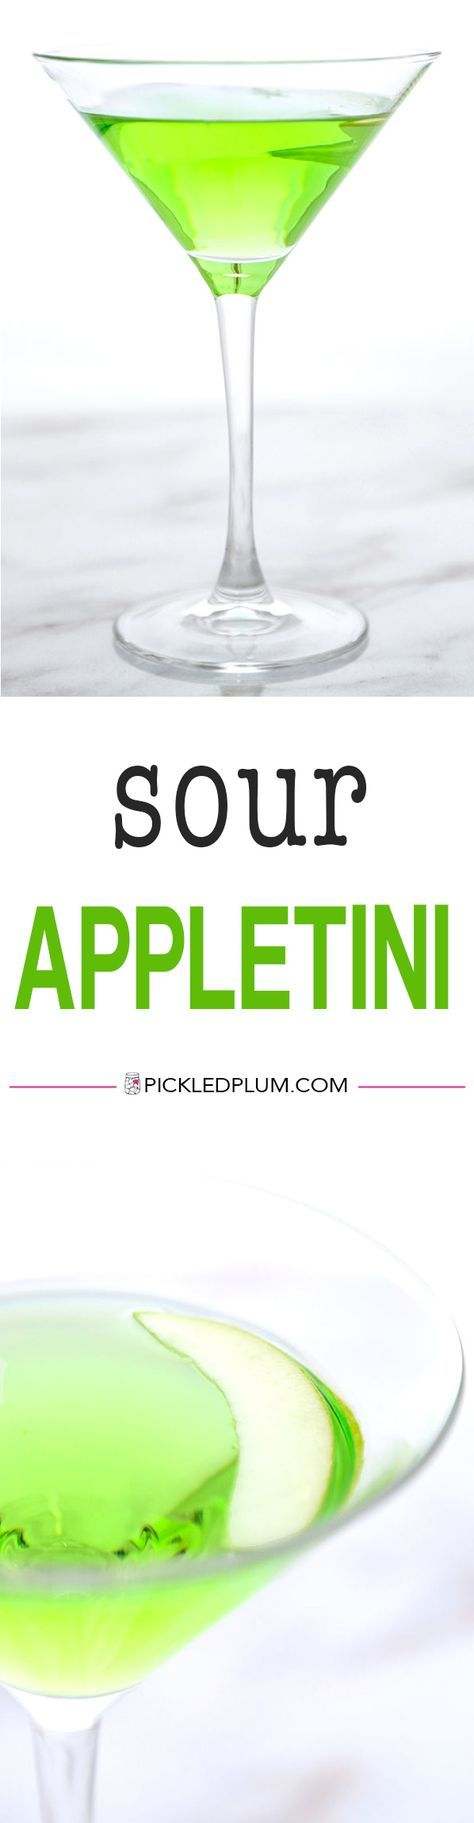 Sour Appletini (Video) - A very green and puckery Sour Appletini Recipe that tastes just like Granny Smith apples! Only 3 ingredients needed! Recipe, drinks, cocktail, martini, Thanksgiving, holiday drink, vodka | pickledplum.com